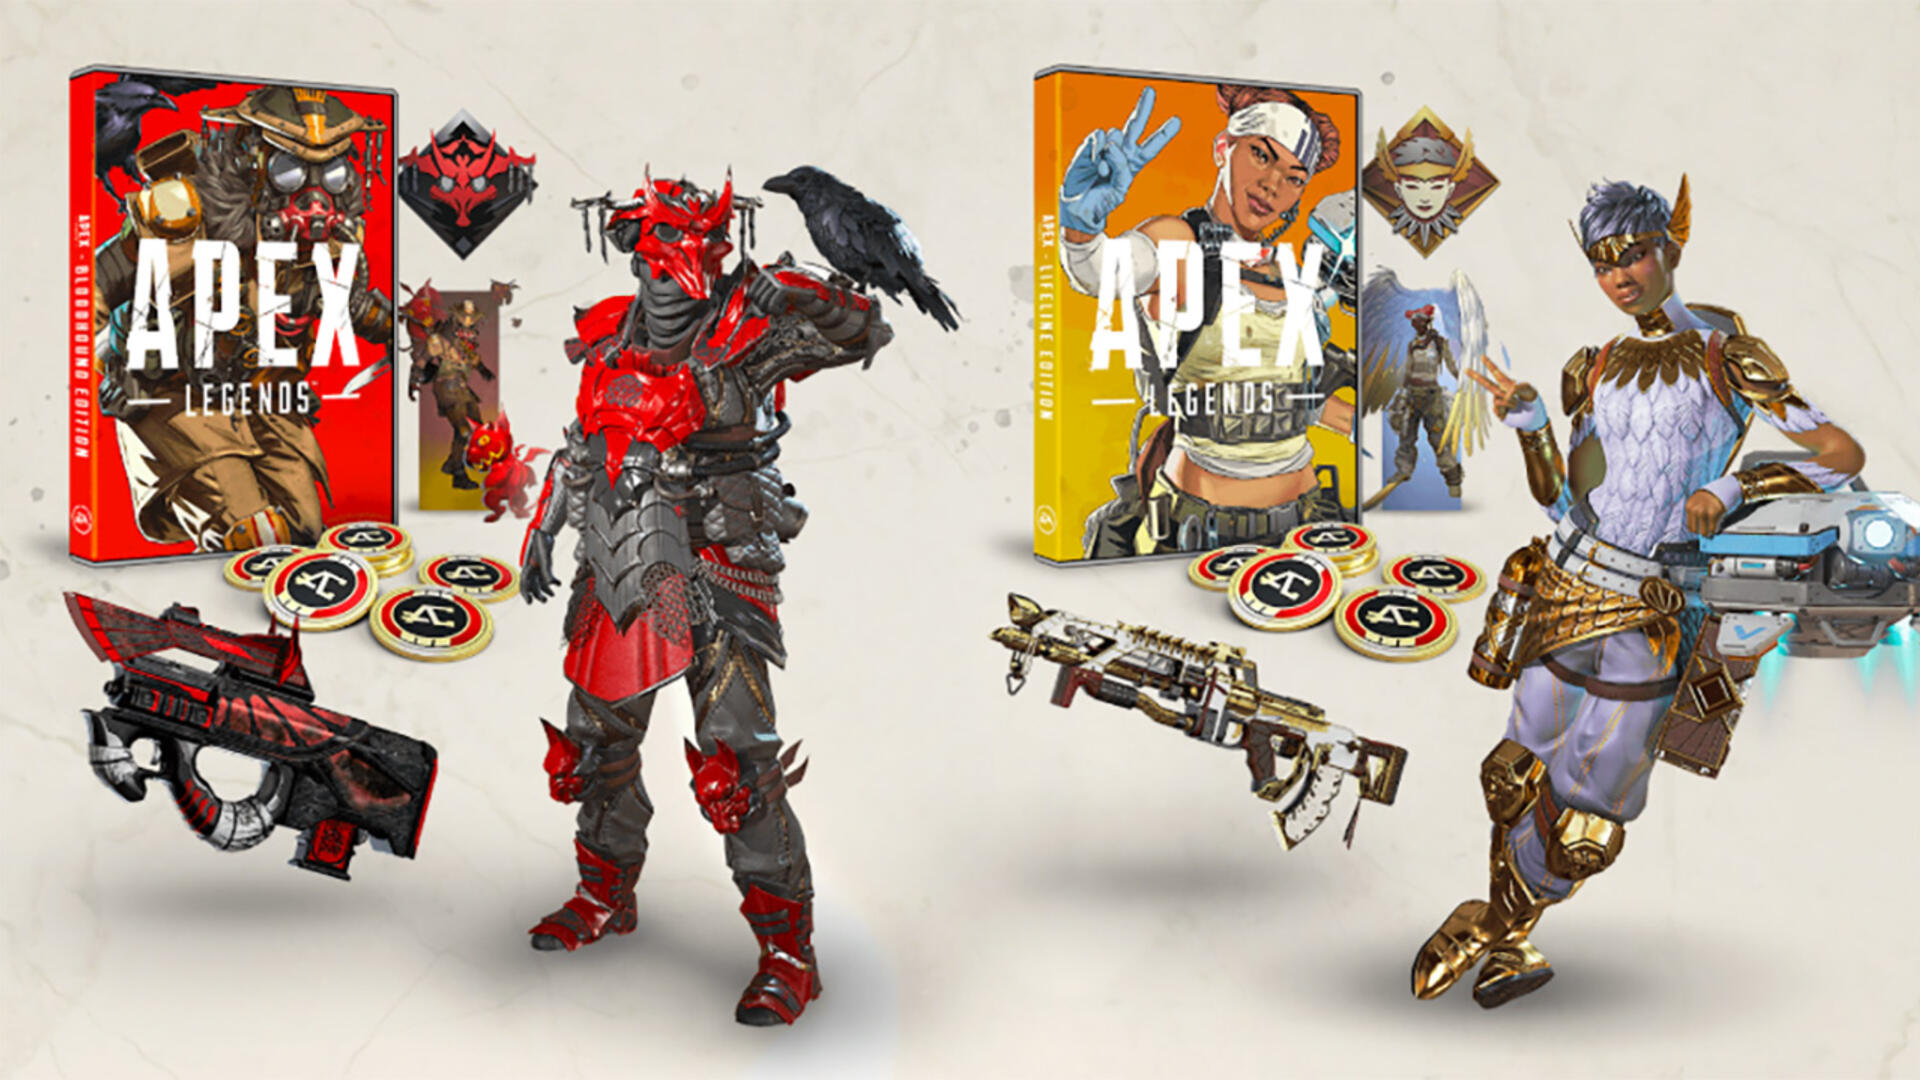 Apex Legends Gets Retail Editions With Exclusive Skins and Enough Coins For a Battle Pass